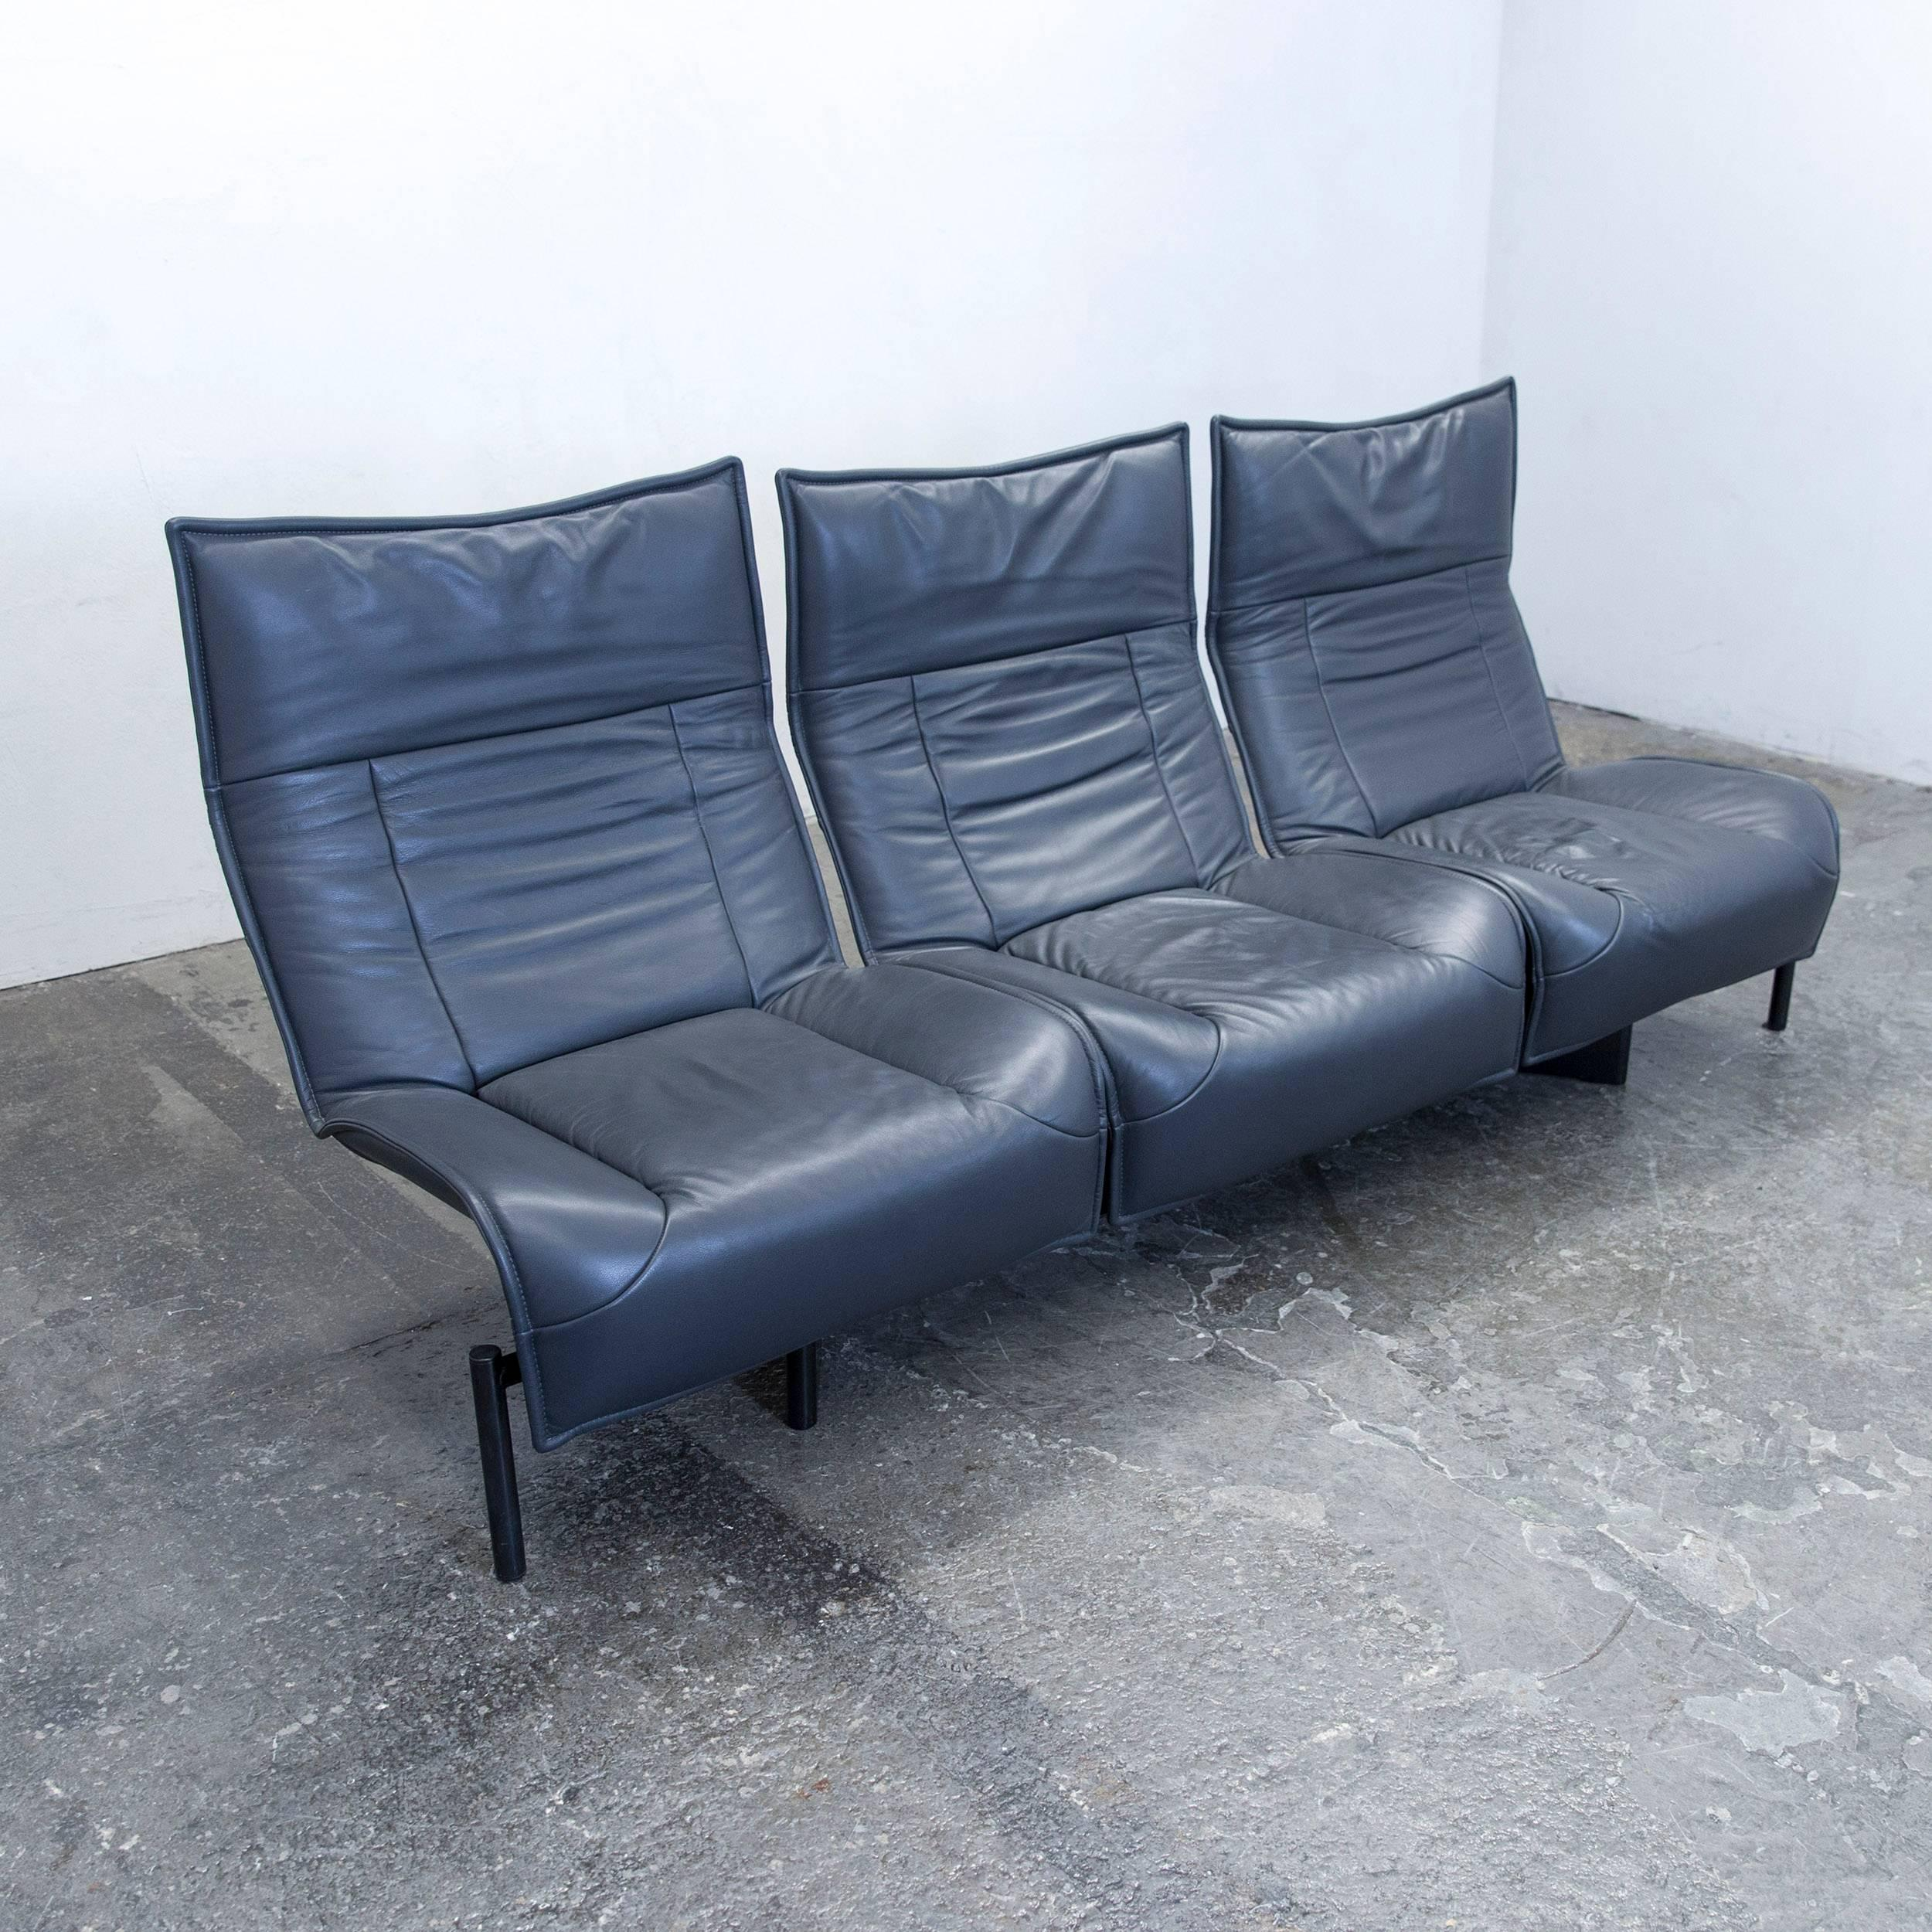 Bettsofa Kika Sofa Leder Wei Design Ecksofa With Sofa Leder Wei Design